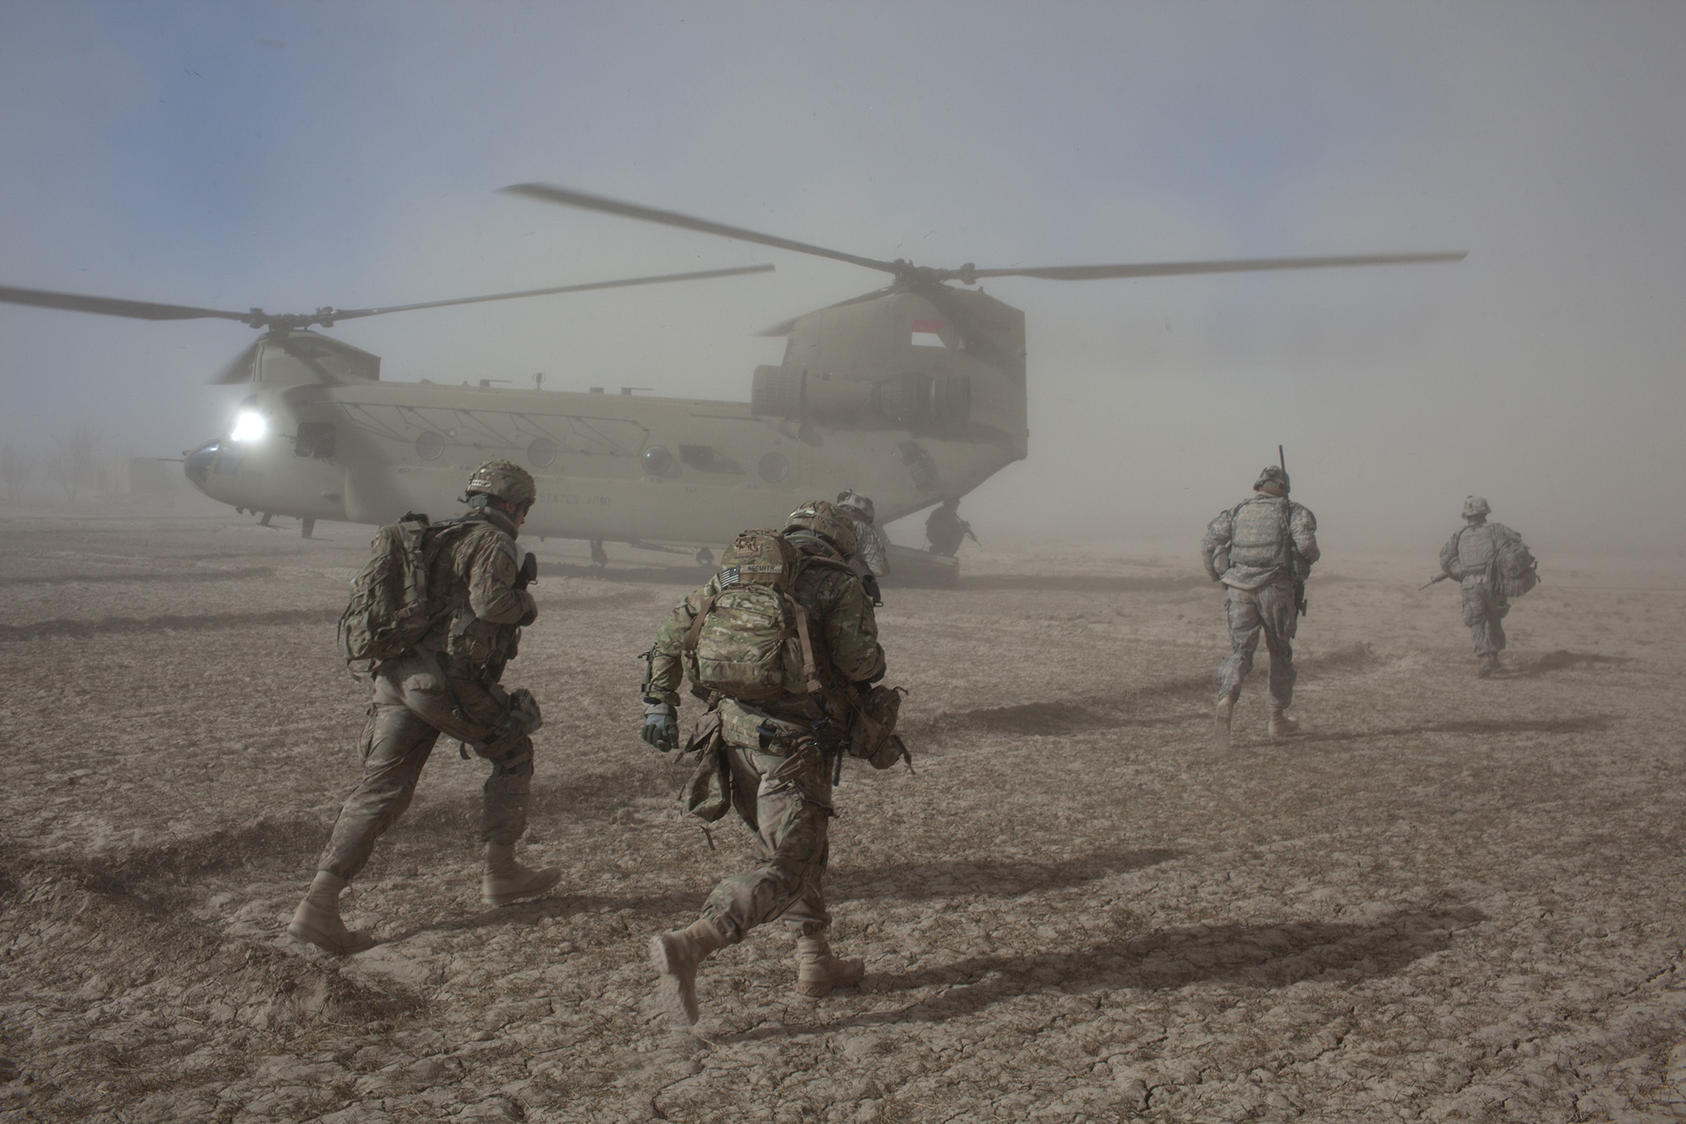 American soldiers with the 101st Airborne Division during a morning helicopter raid in the village of Alam Khel, Afghanistan, Jan. 23, 2011. (Tyler Hicks/The New York Times)